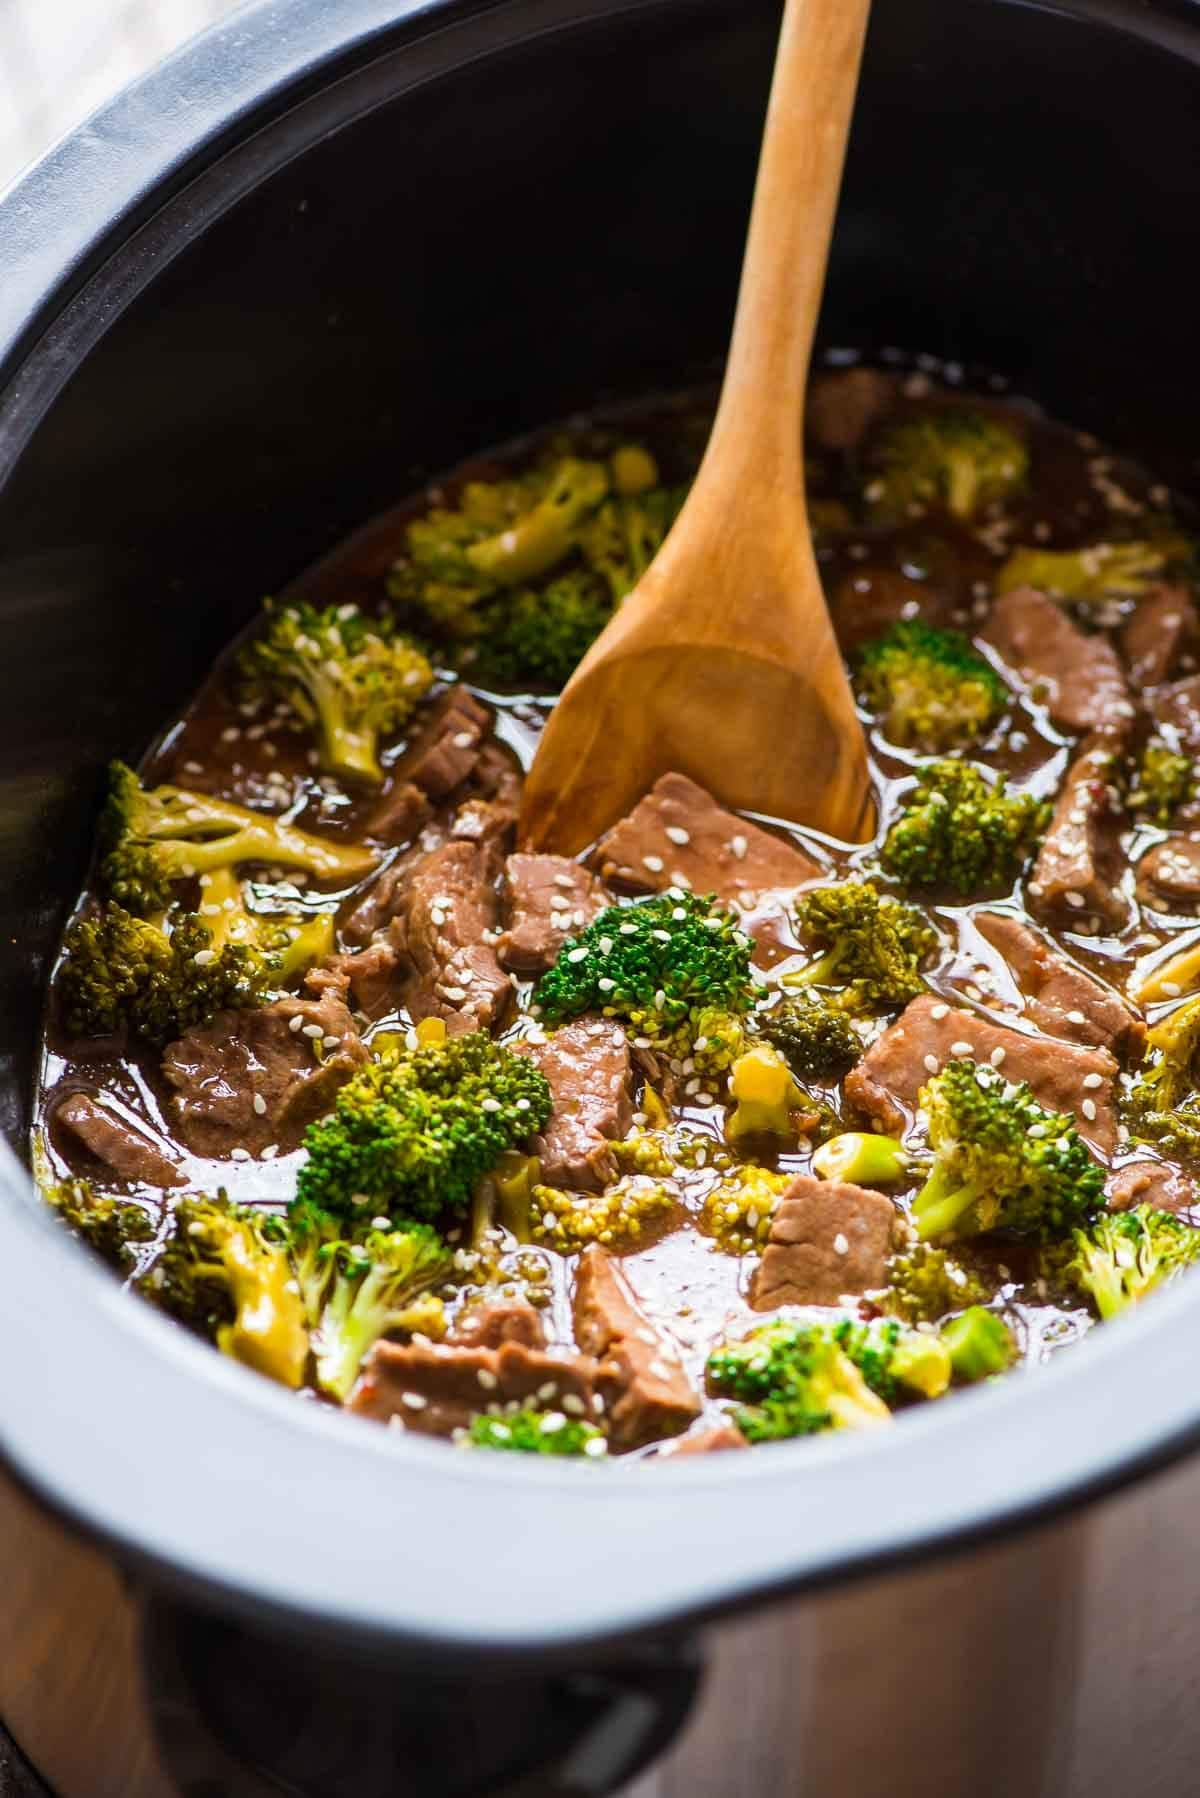 Delicious dishes of broccoli in a slow cooker